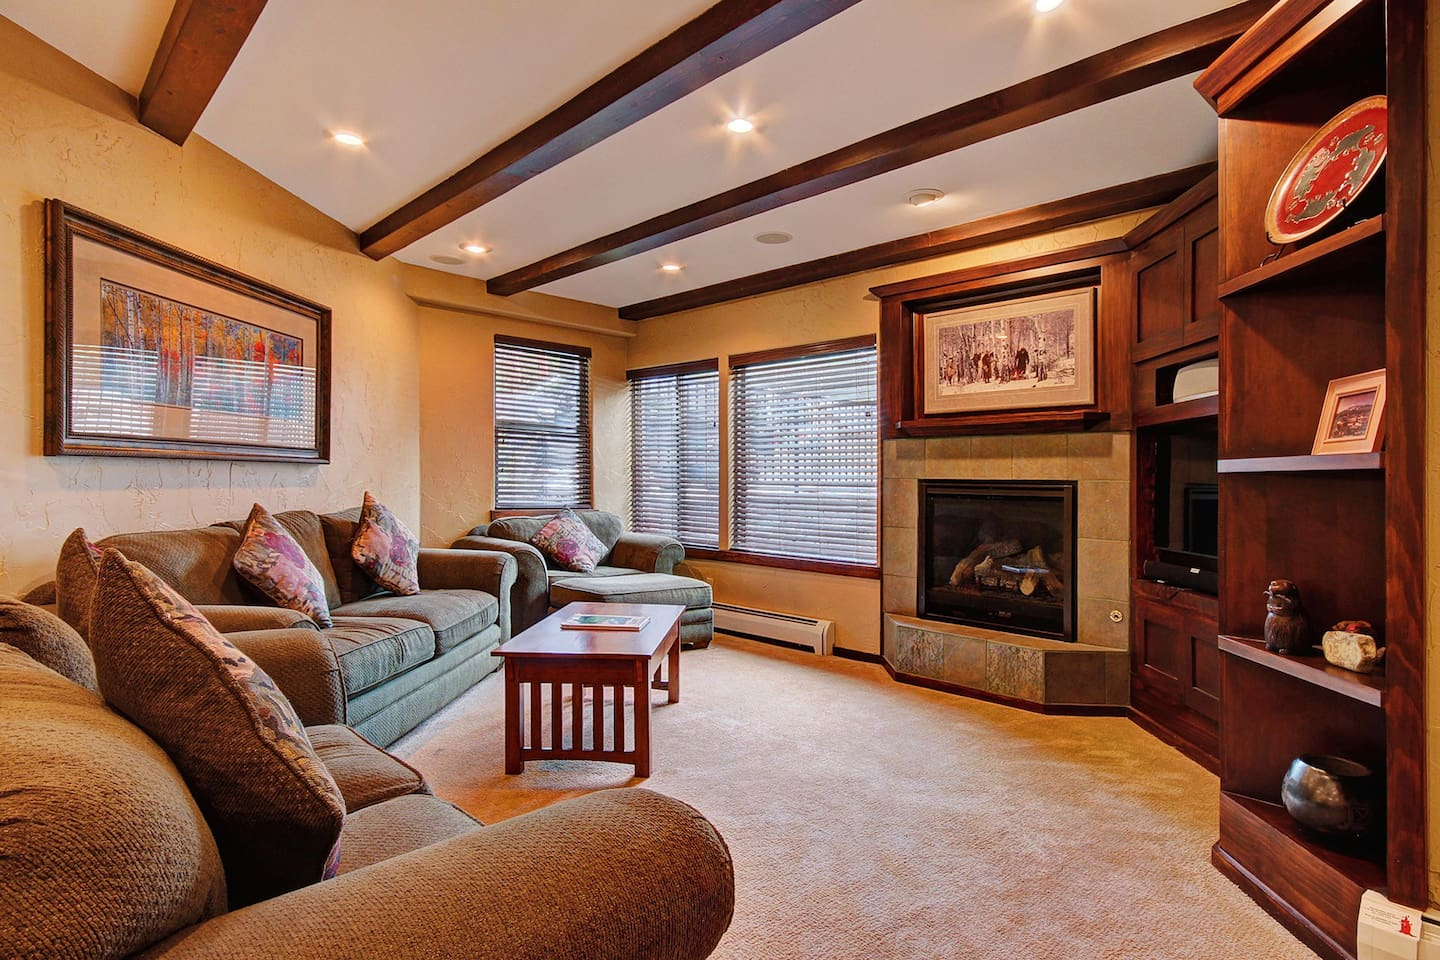 The Lift C12 - a SkyRun Breckenridge Property - Cozy living room with gas fireplace and flat screen TV